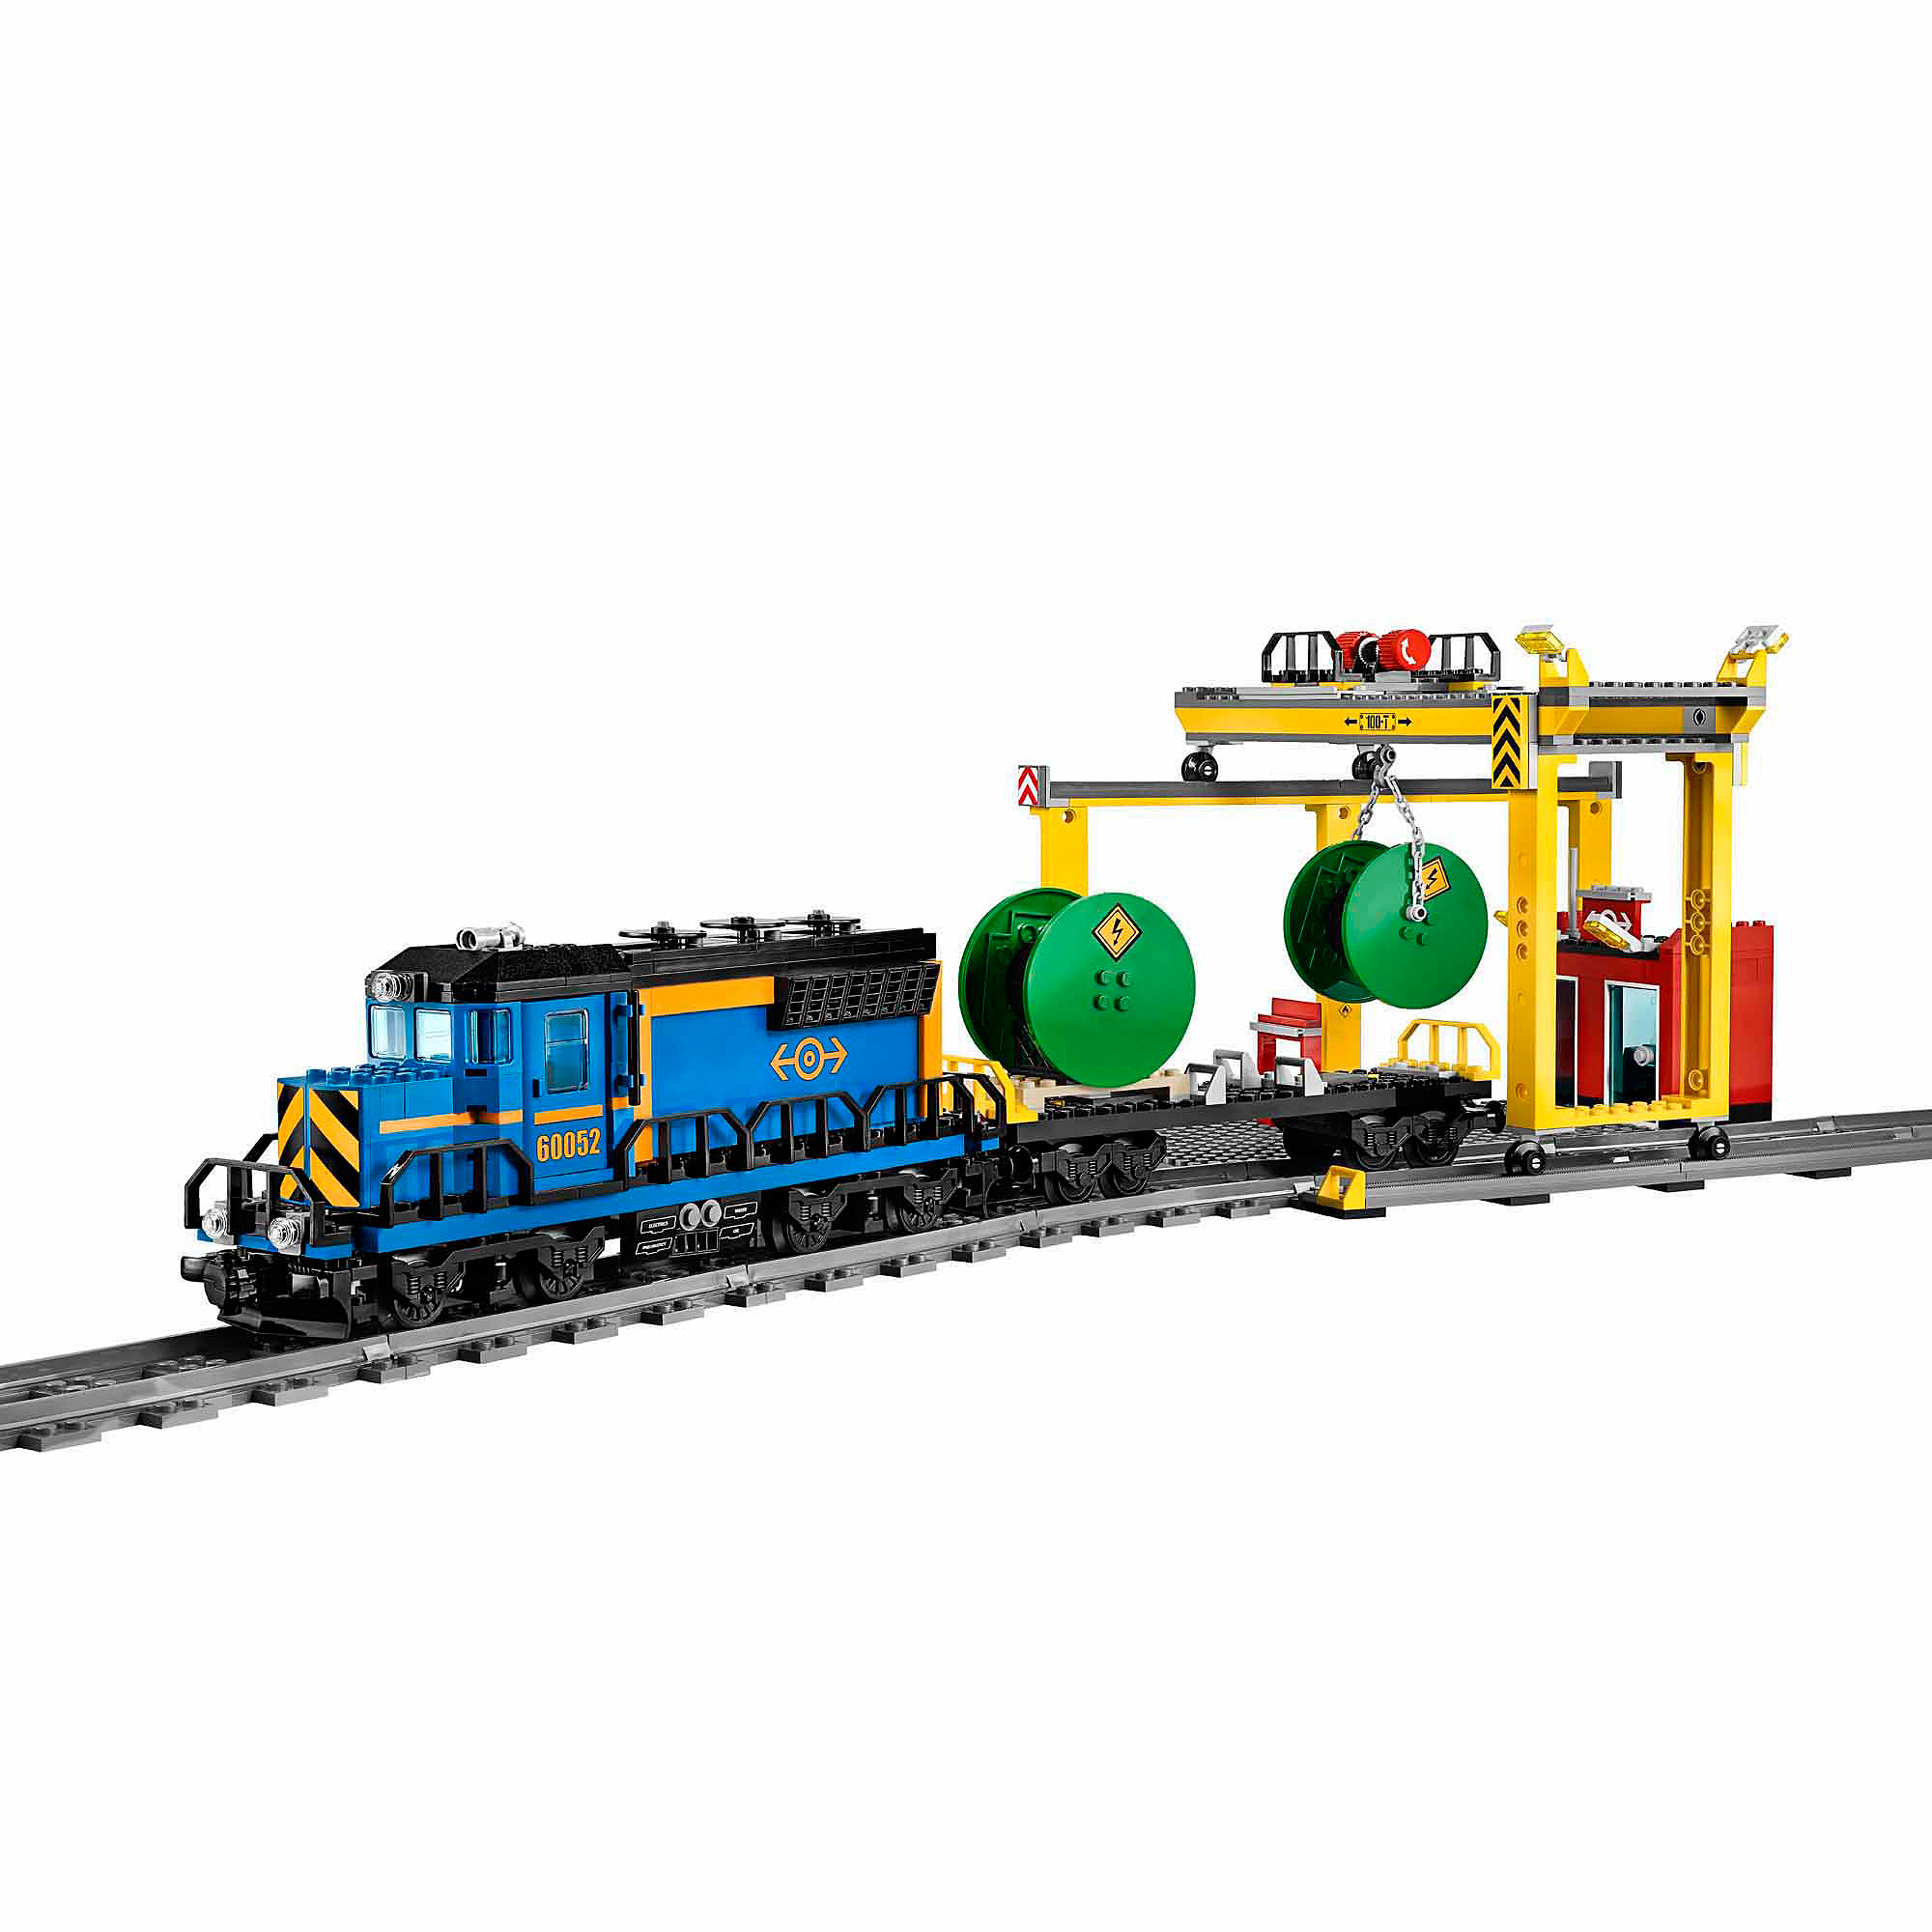 lego city trains cargo train walmartcom - Lego Halloween Train